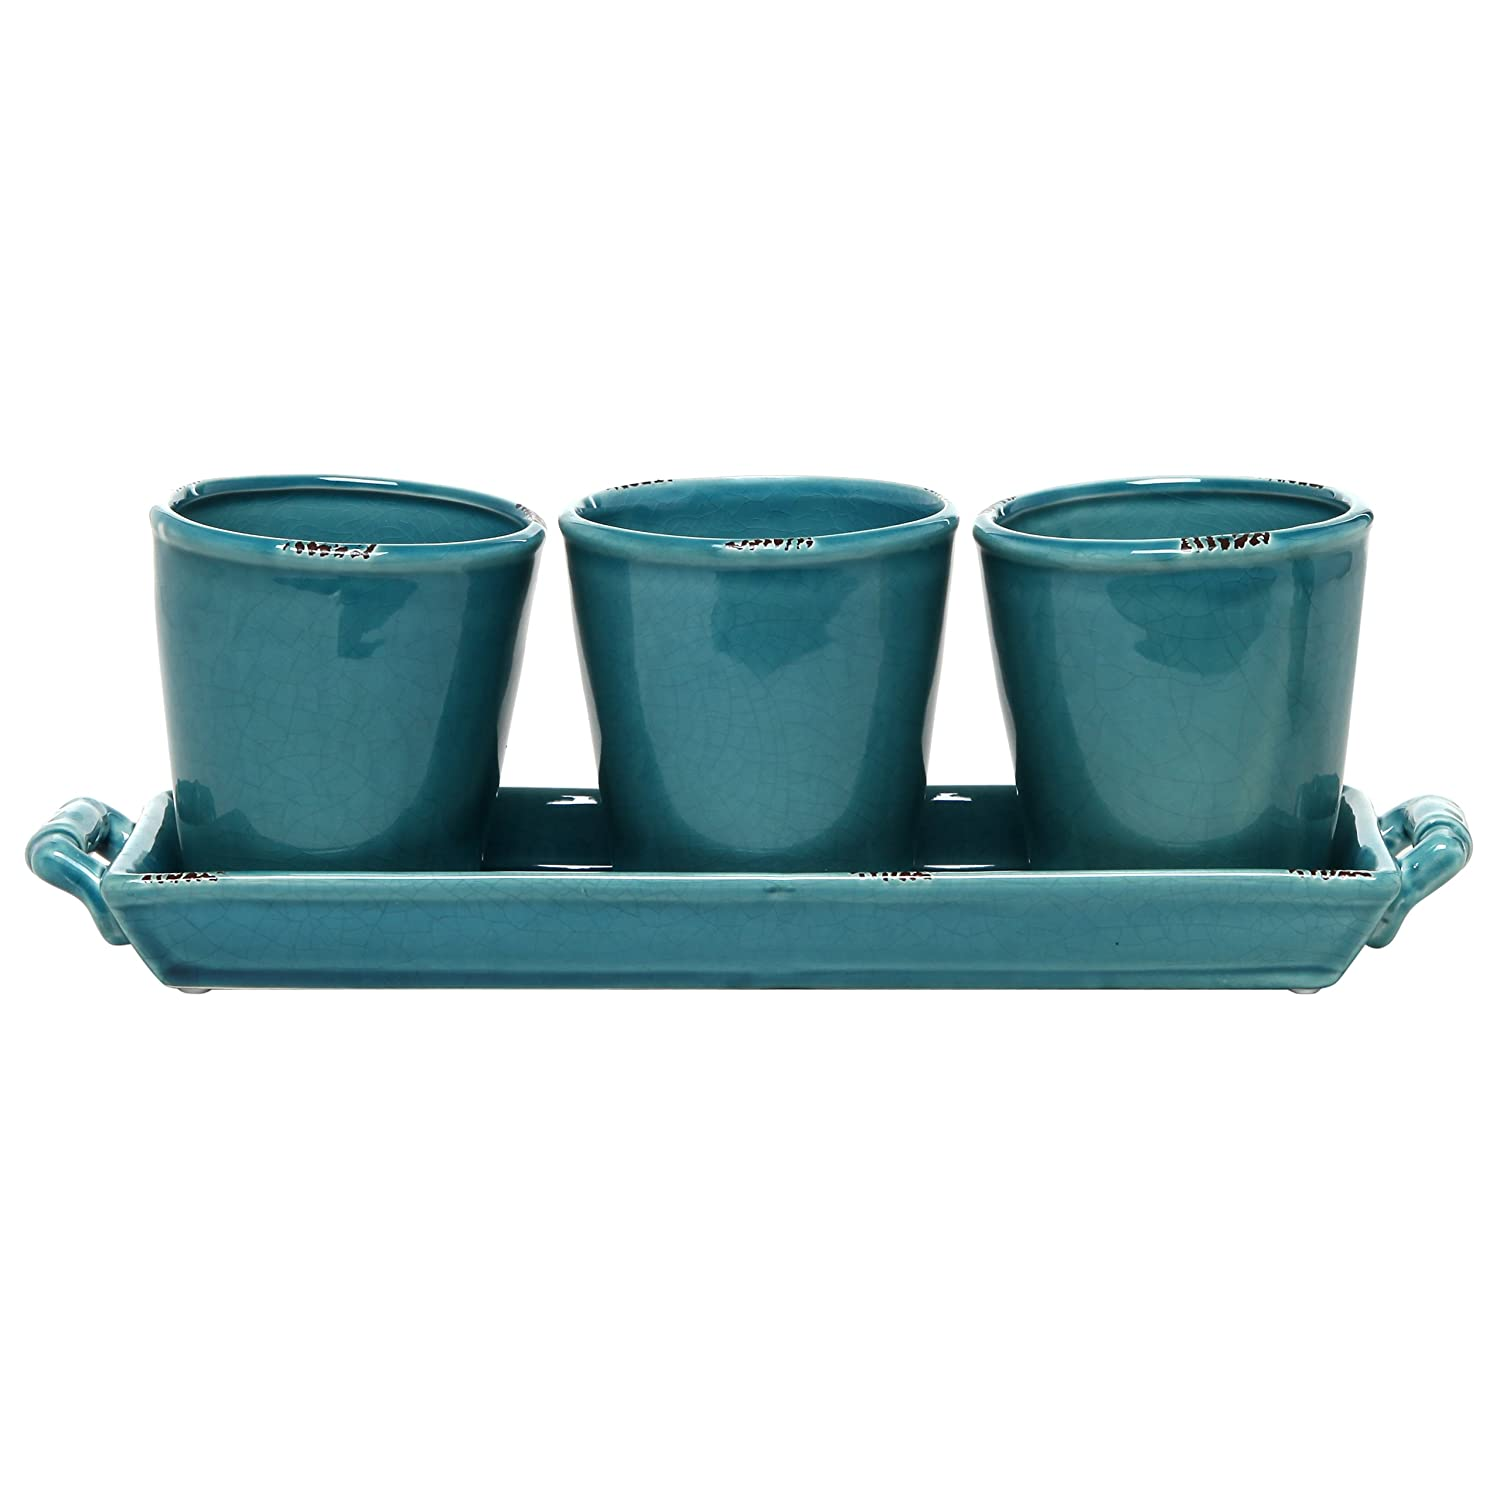 Amazon.com : MyGift Set of 3 Country Rustic Turquoise Ceramic ...